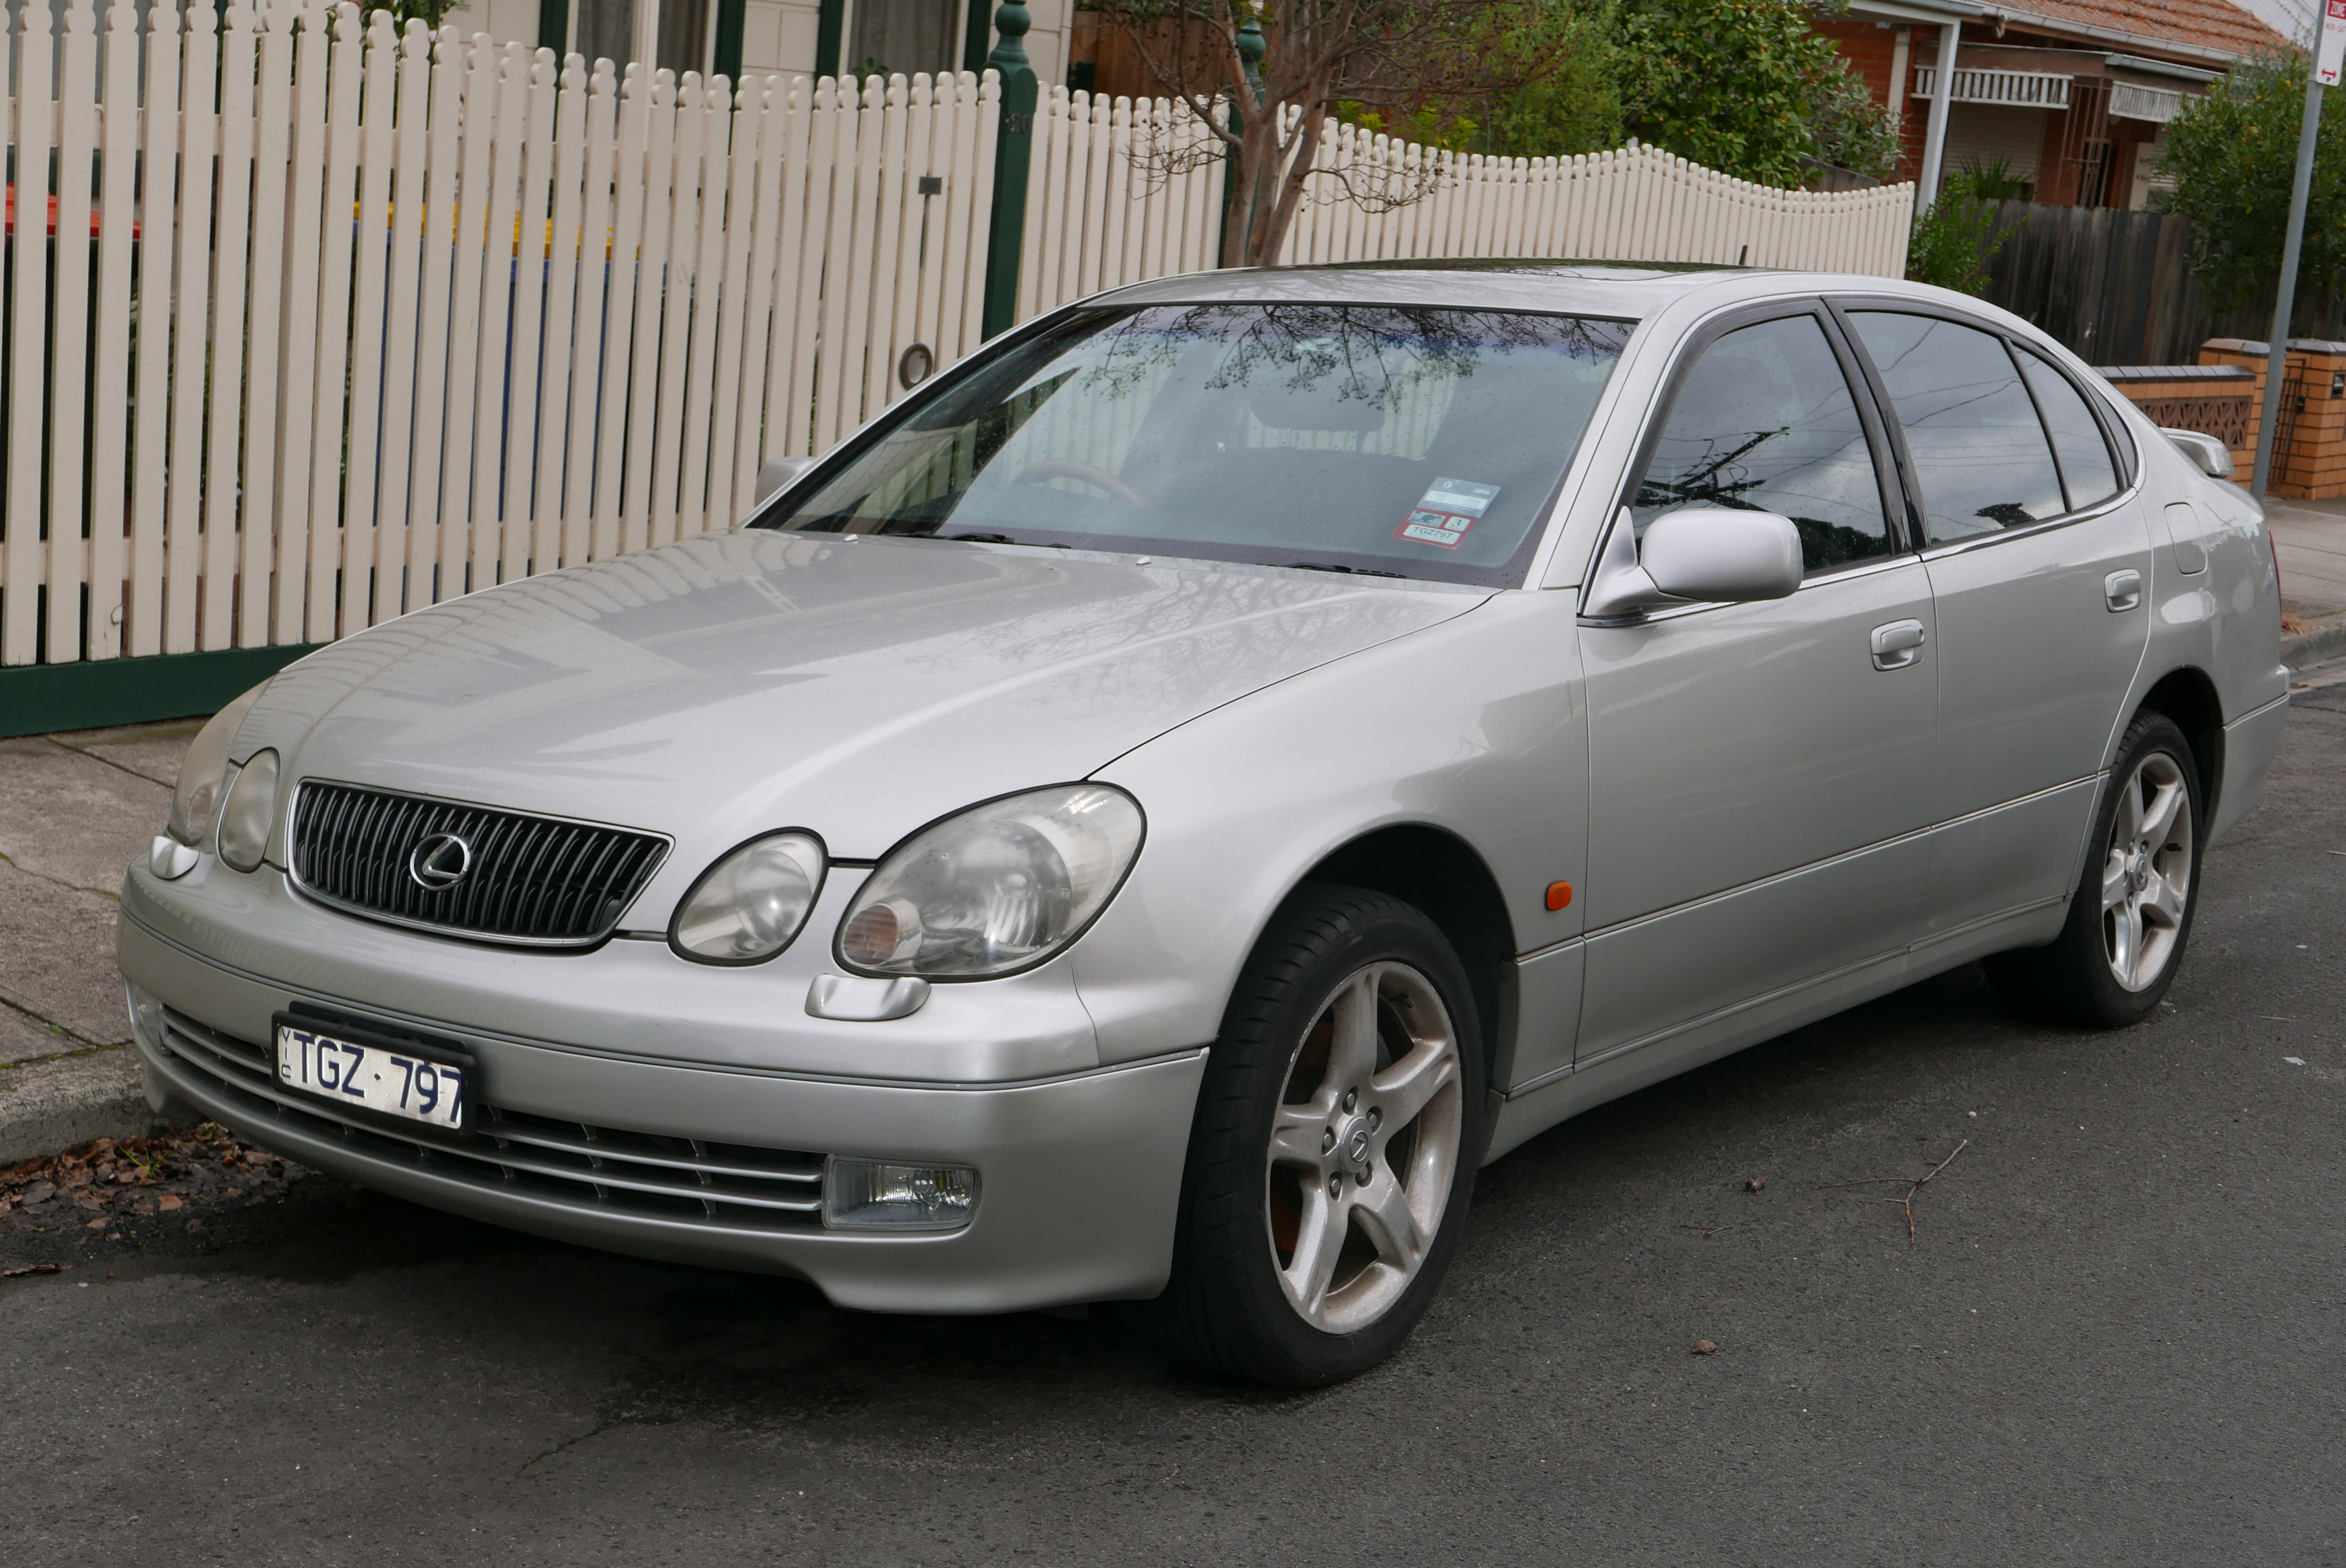 Lexus we want your suggestions what ordinary cars have awesome iconic engines